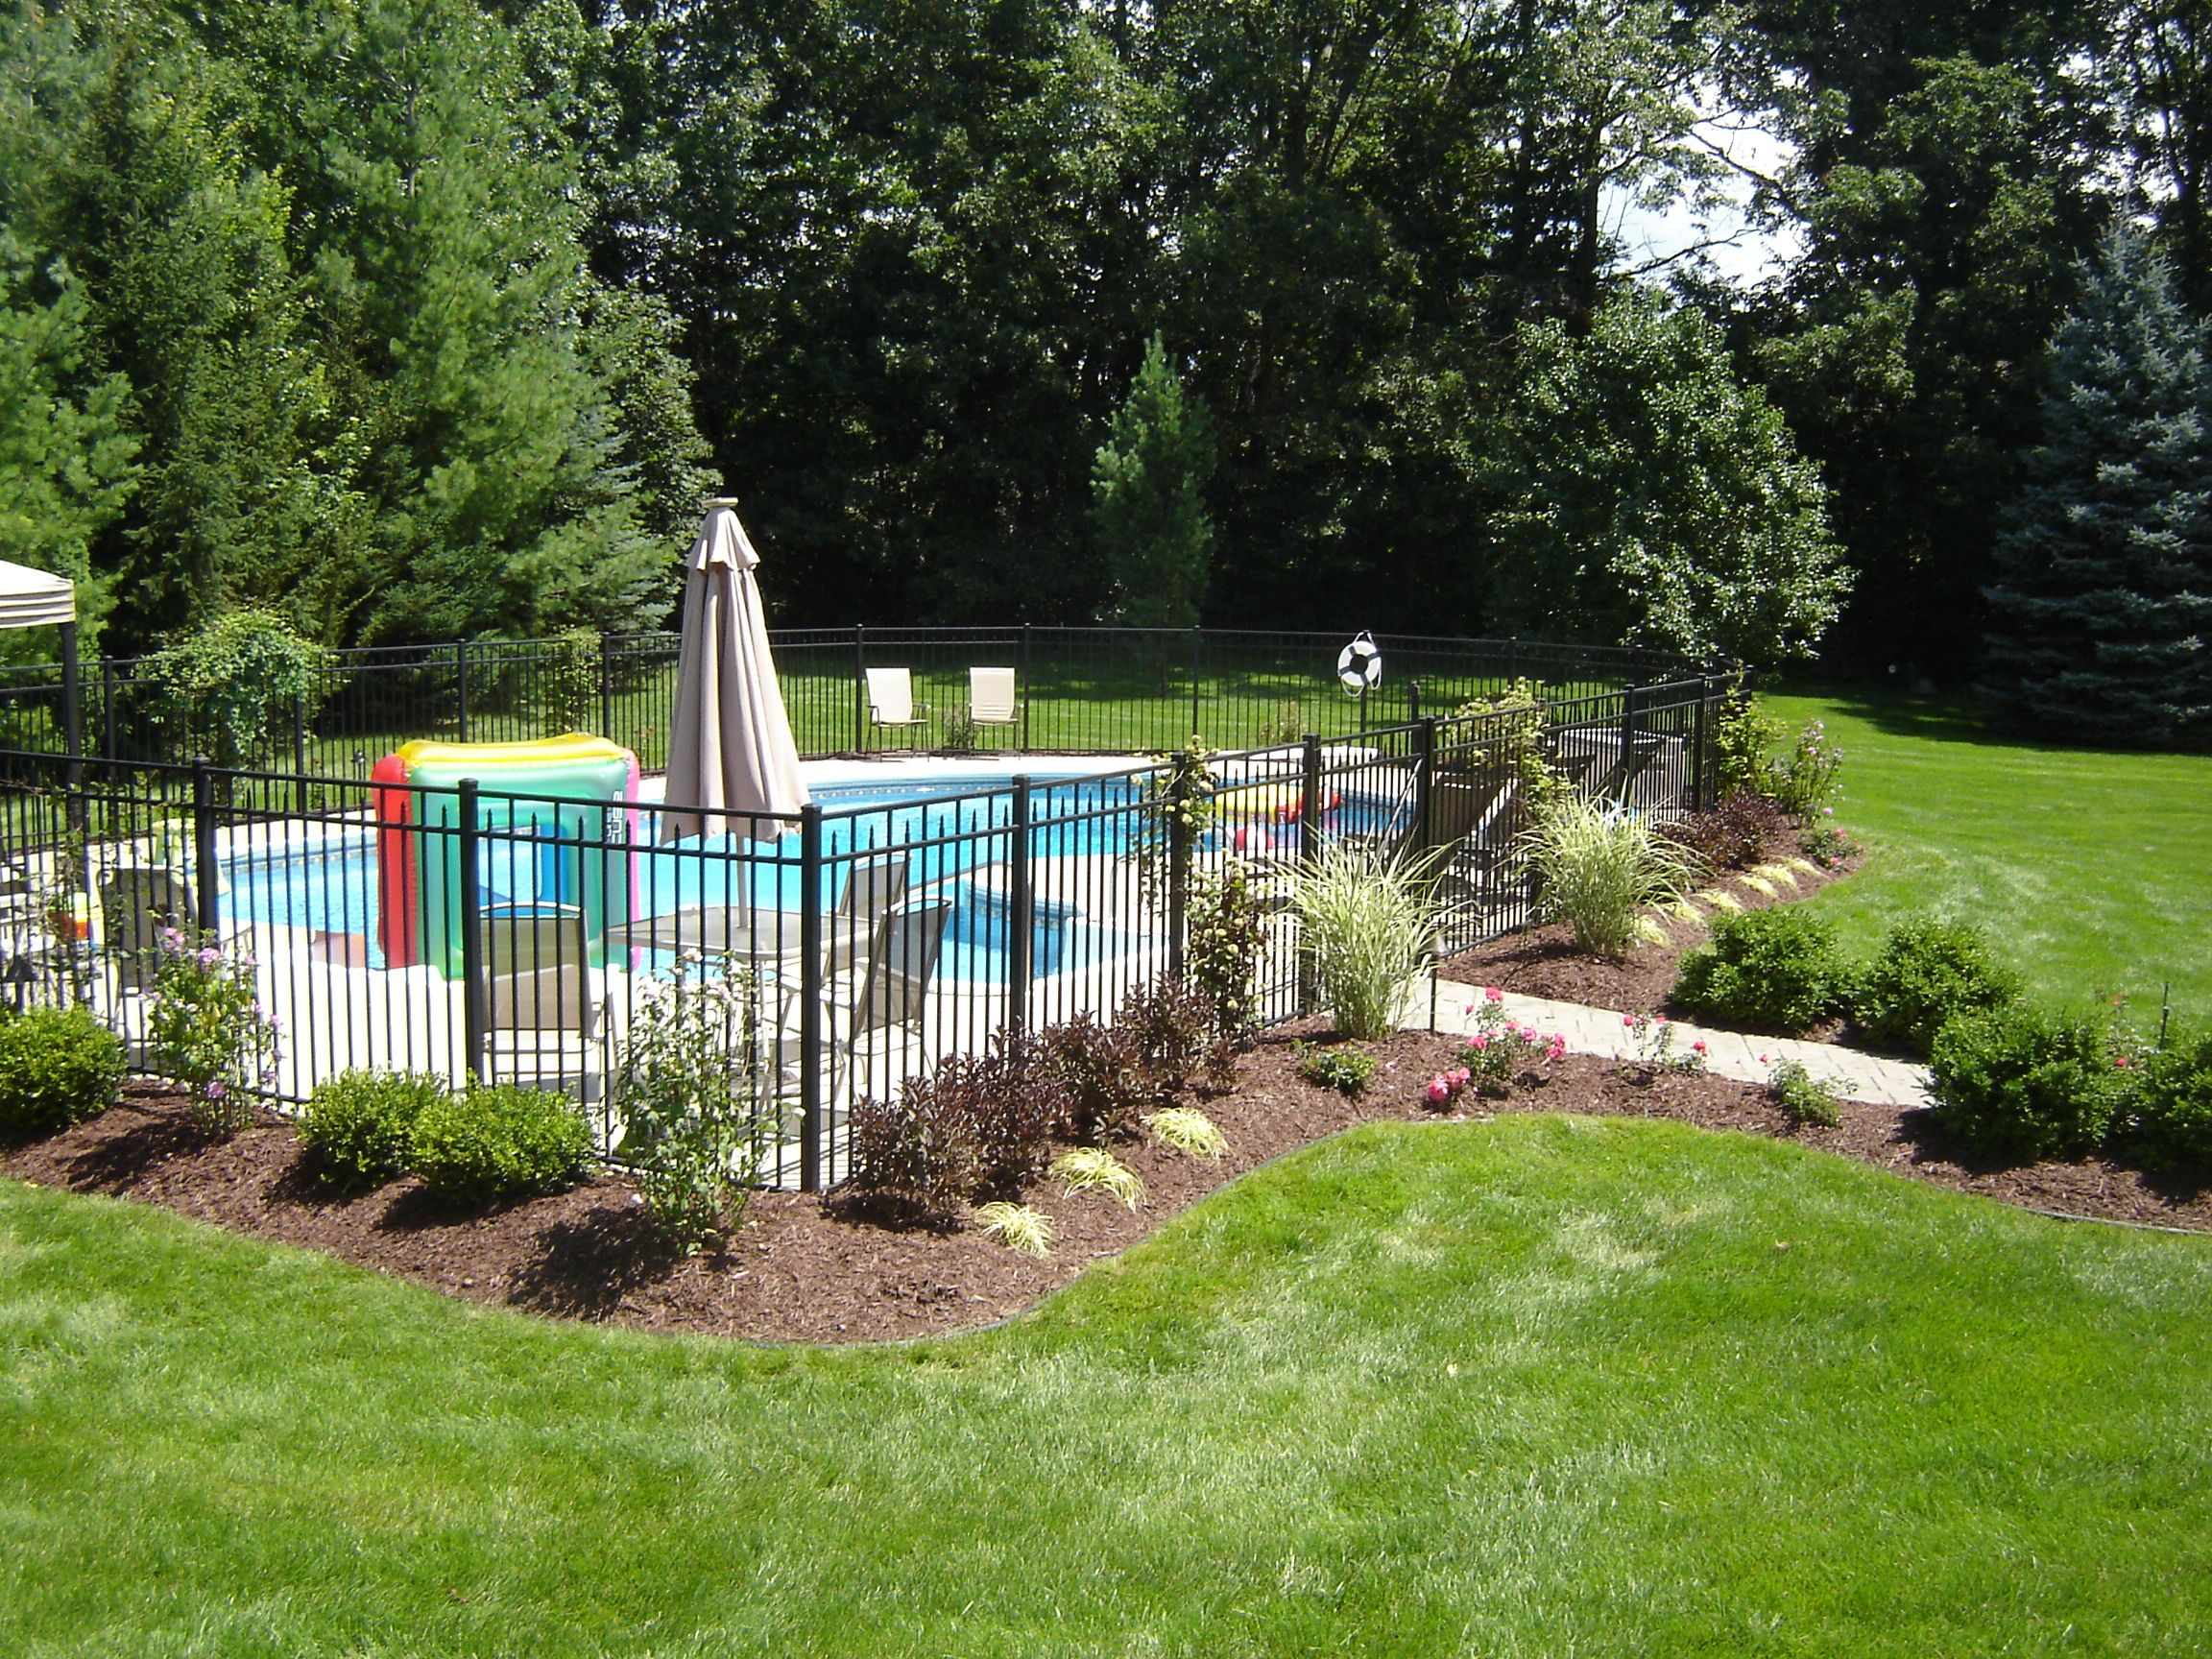 Landscaping Around Pool All Natural Landscapes Landscaping Pinterest Landscaping